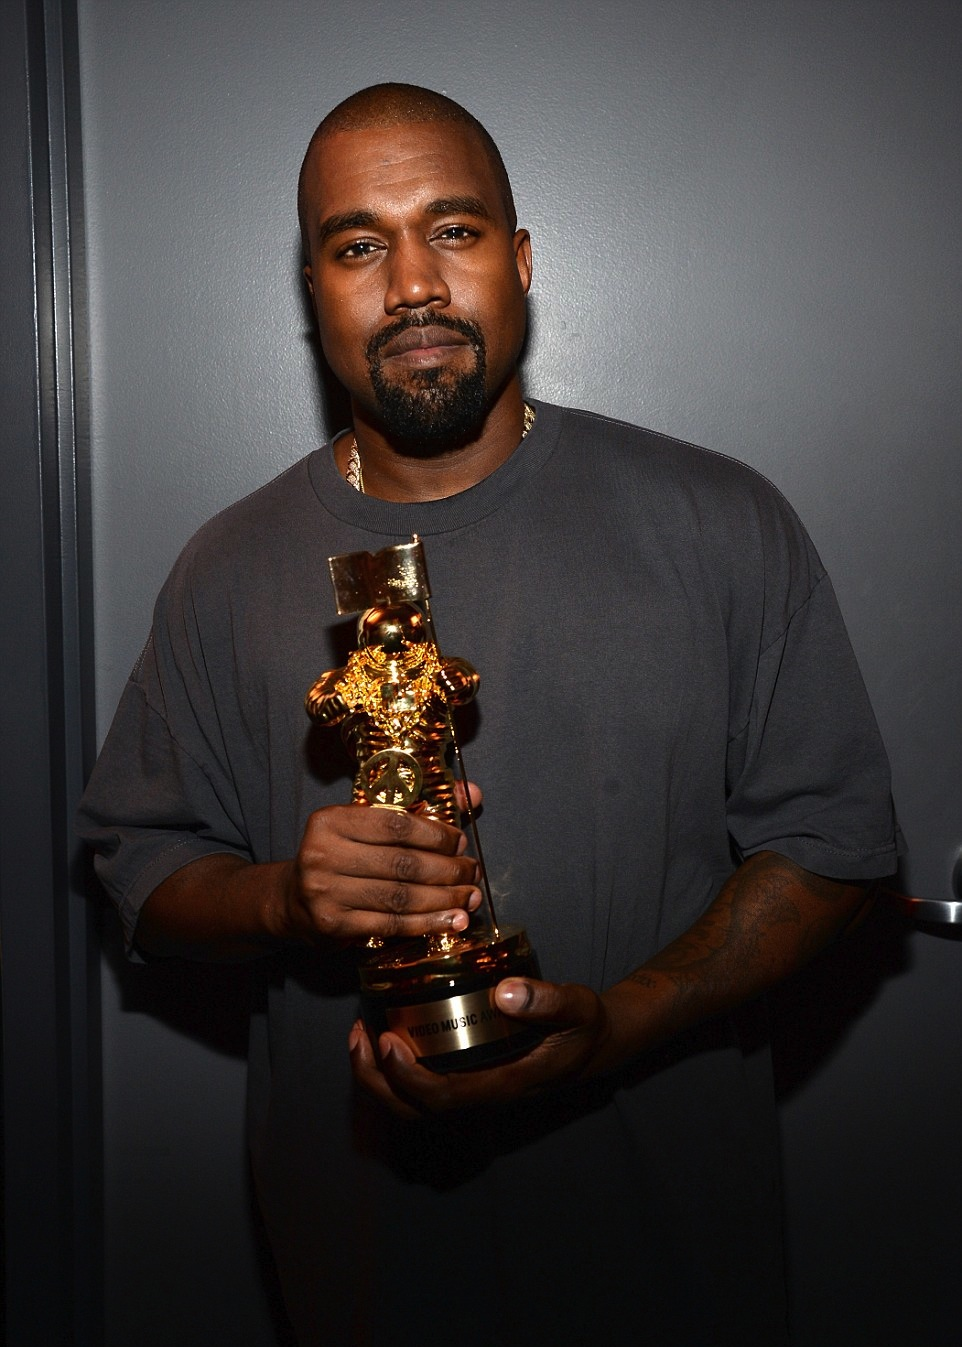 Kanye West-to-run-for-president-2020-culture and life-11